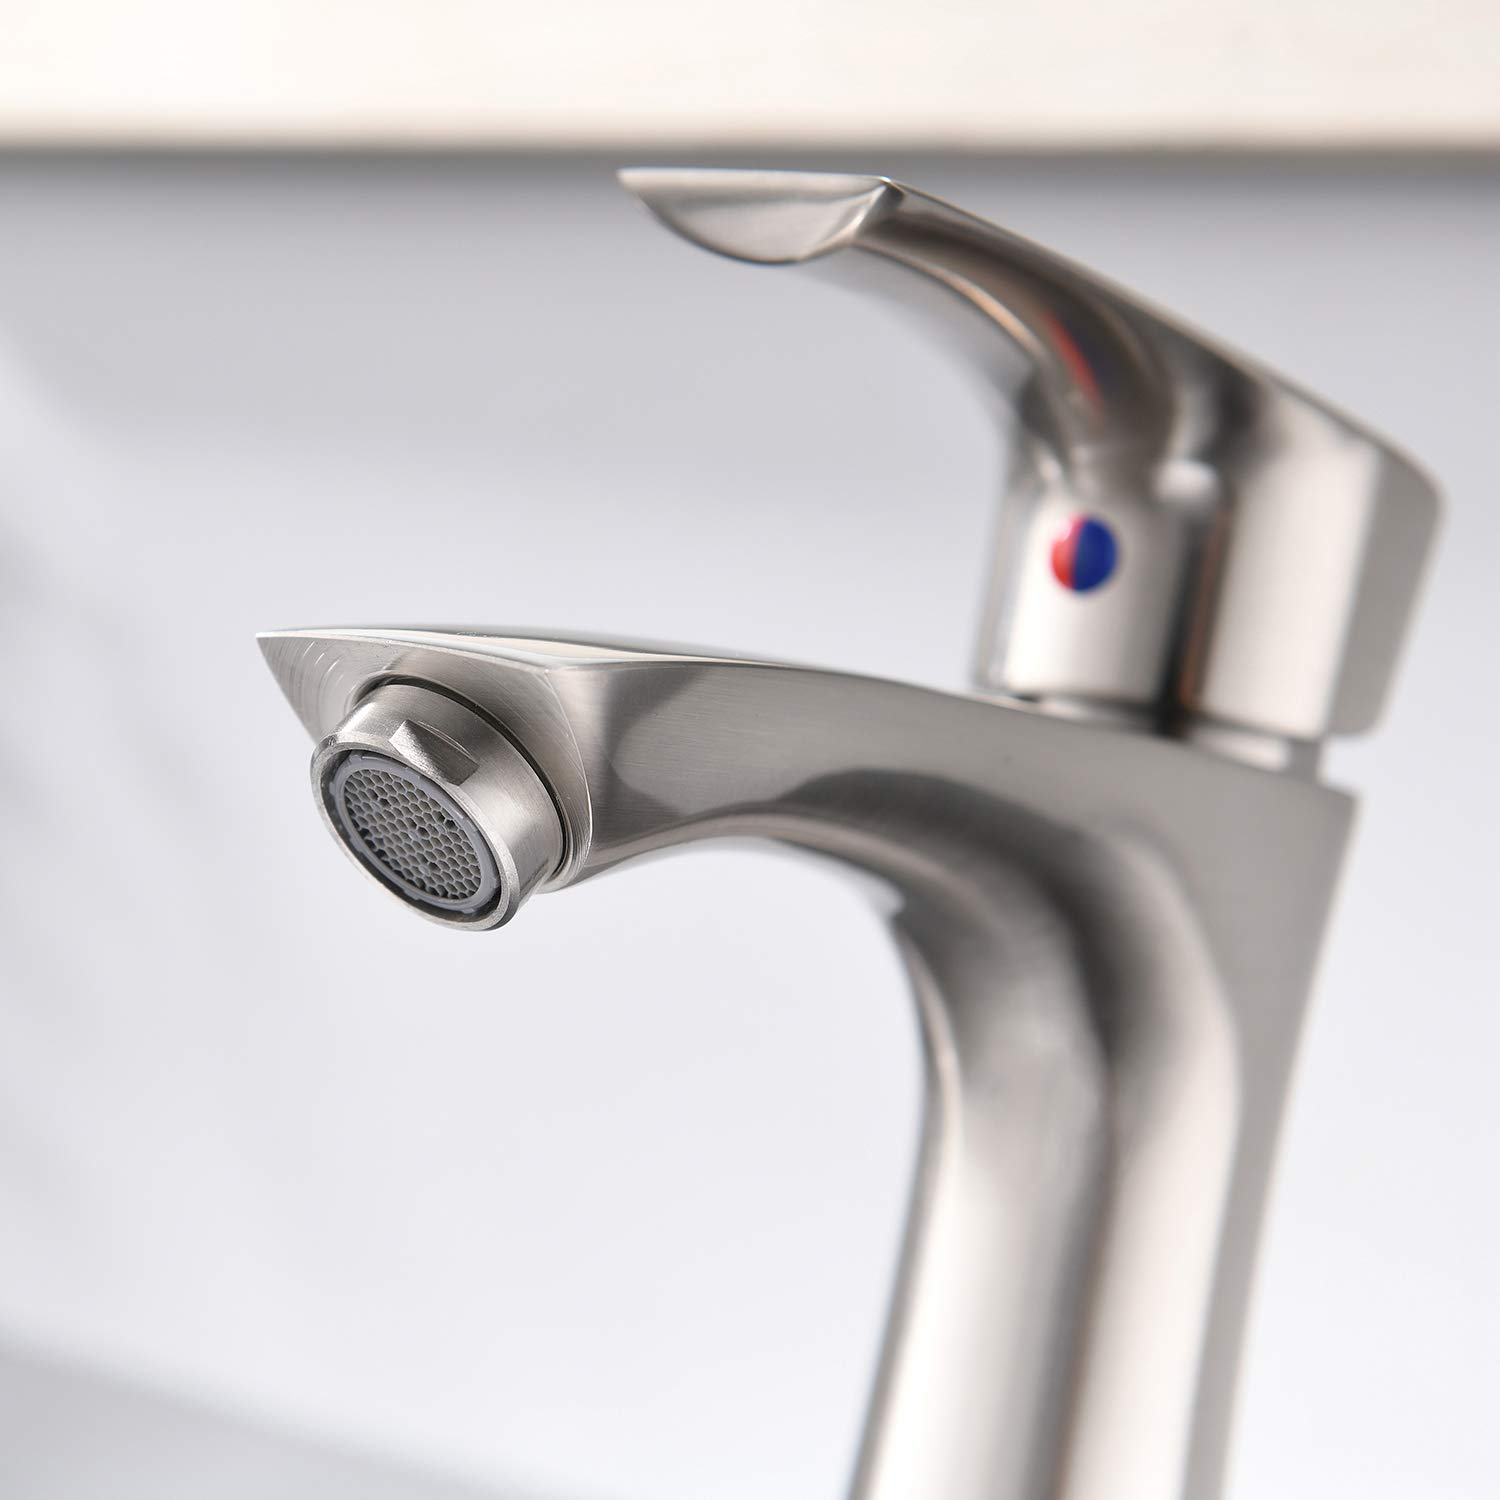 KINGO HOME Commercial Stainless Steel Lavatory Single Handle Single Hole Brushed Nickel Bathroom Faucets, Hot and Cold Water Vanity Sink Faucet by KINGO HOME (Image #6)